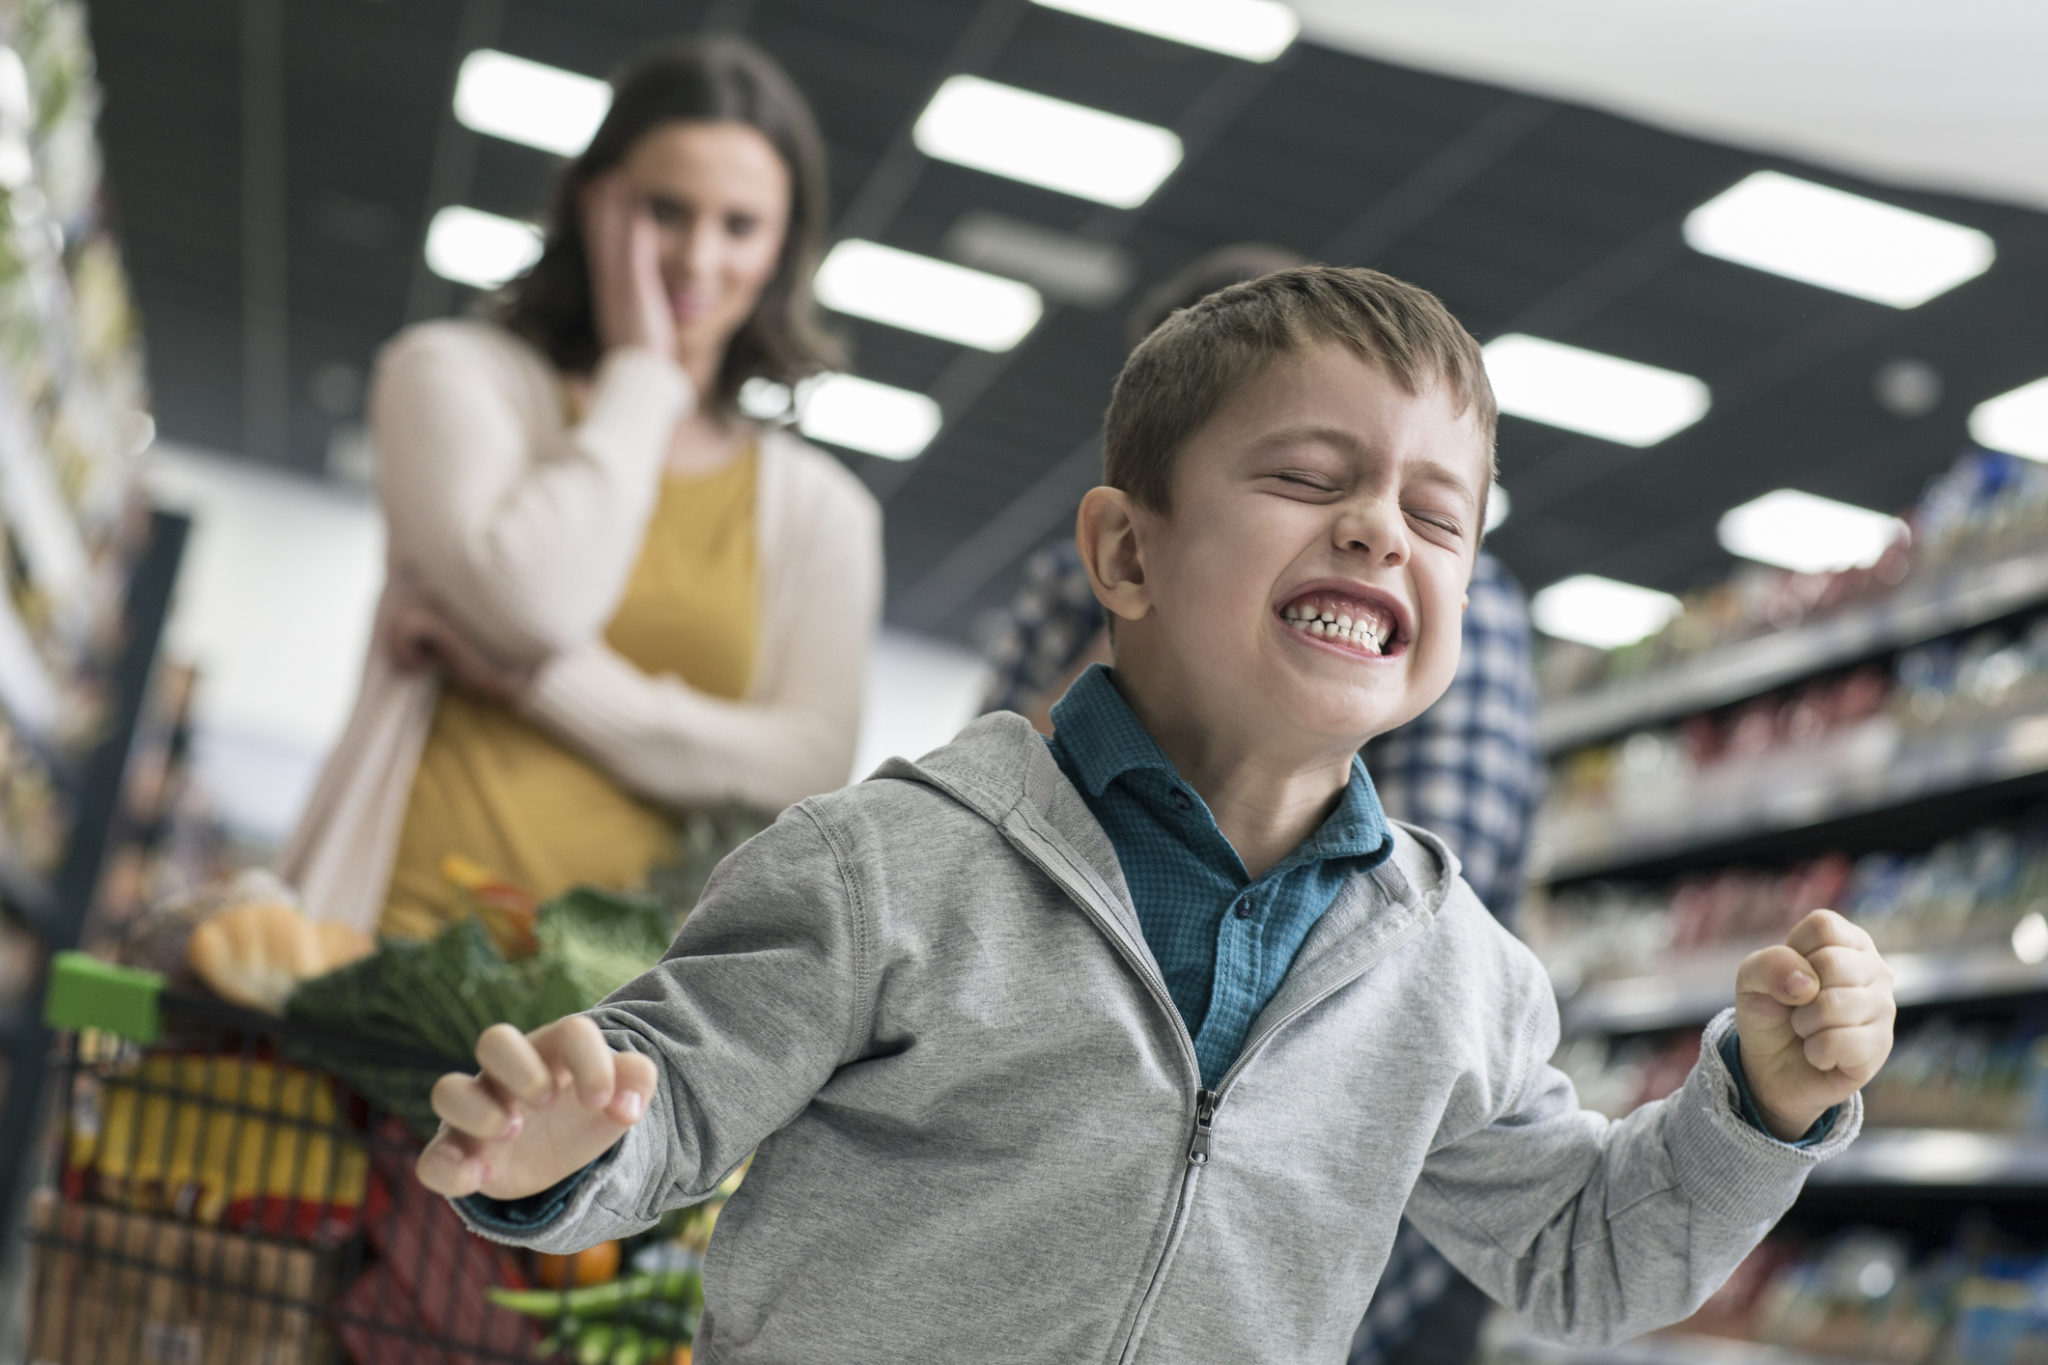 Young boy in supermarket who is having a tantrum